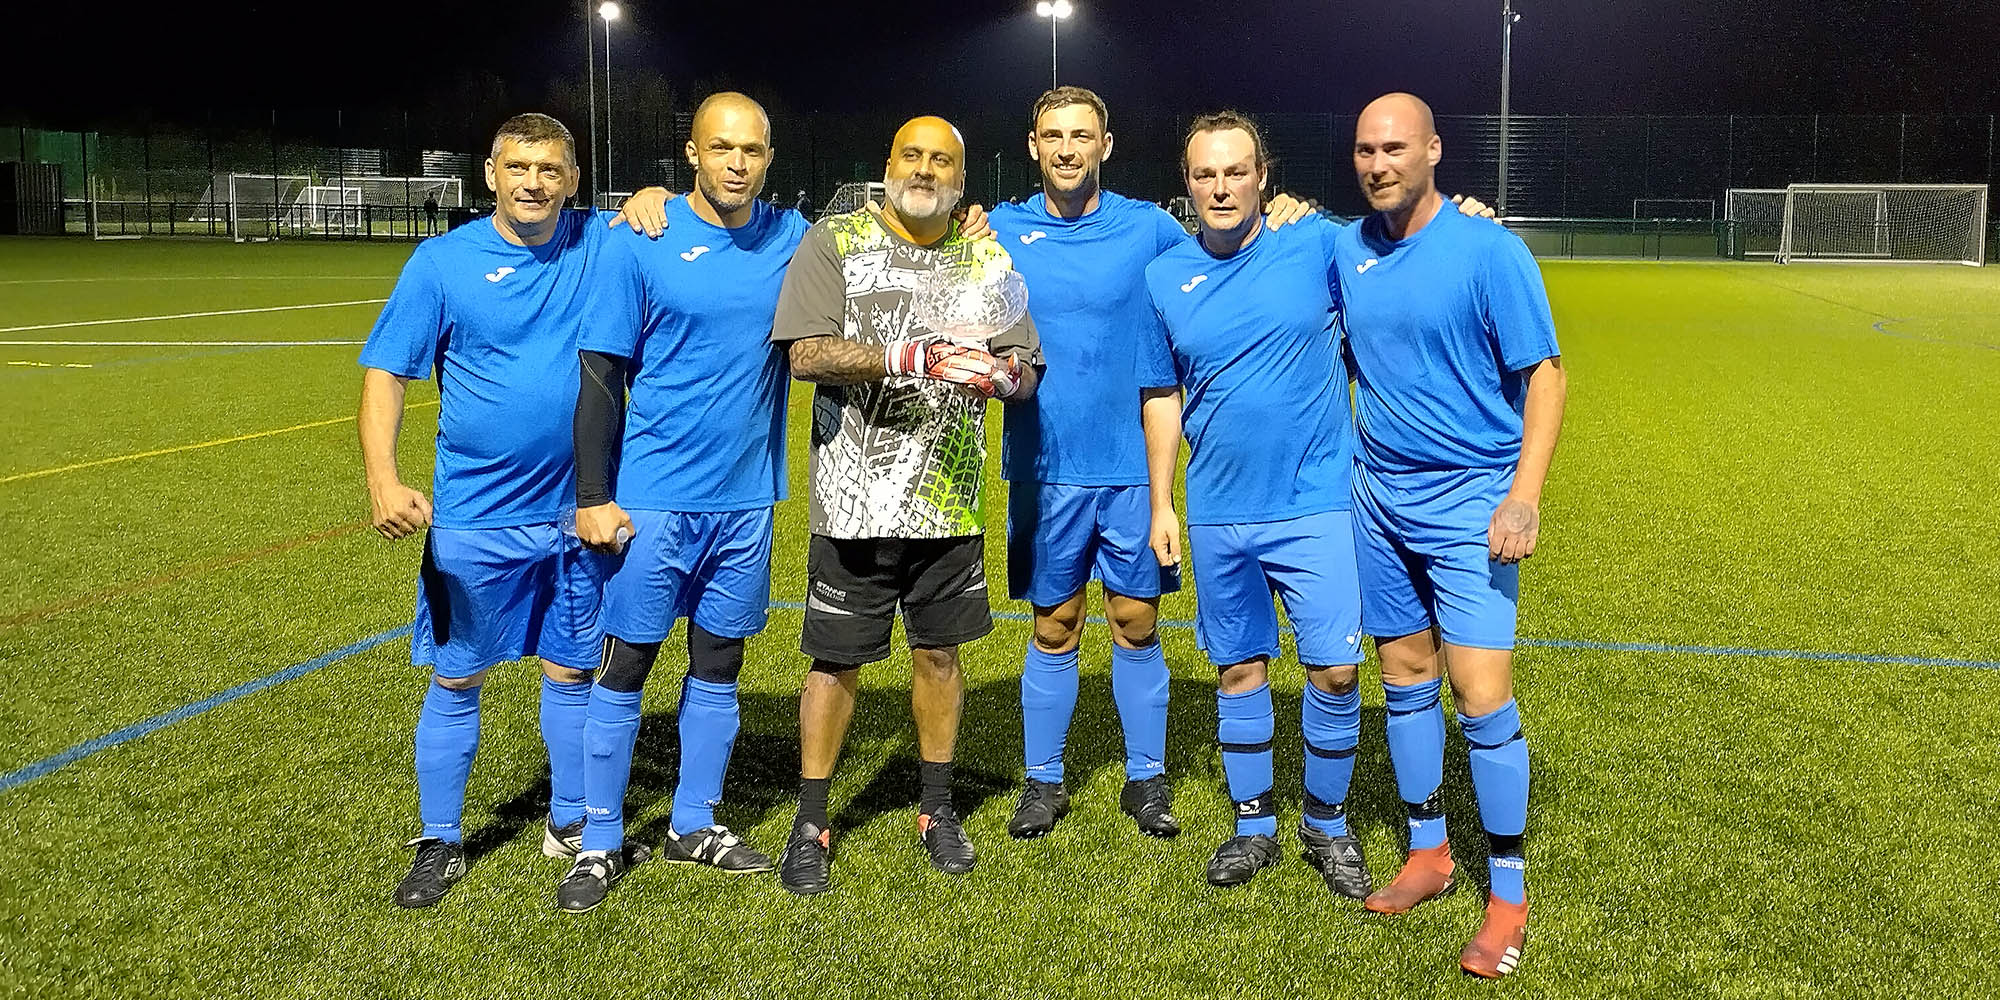 Sporting Redhouse's first triumph since 2008.